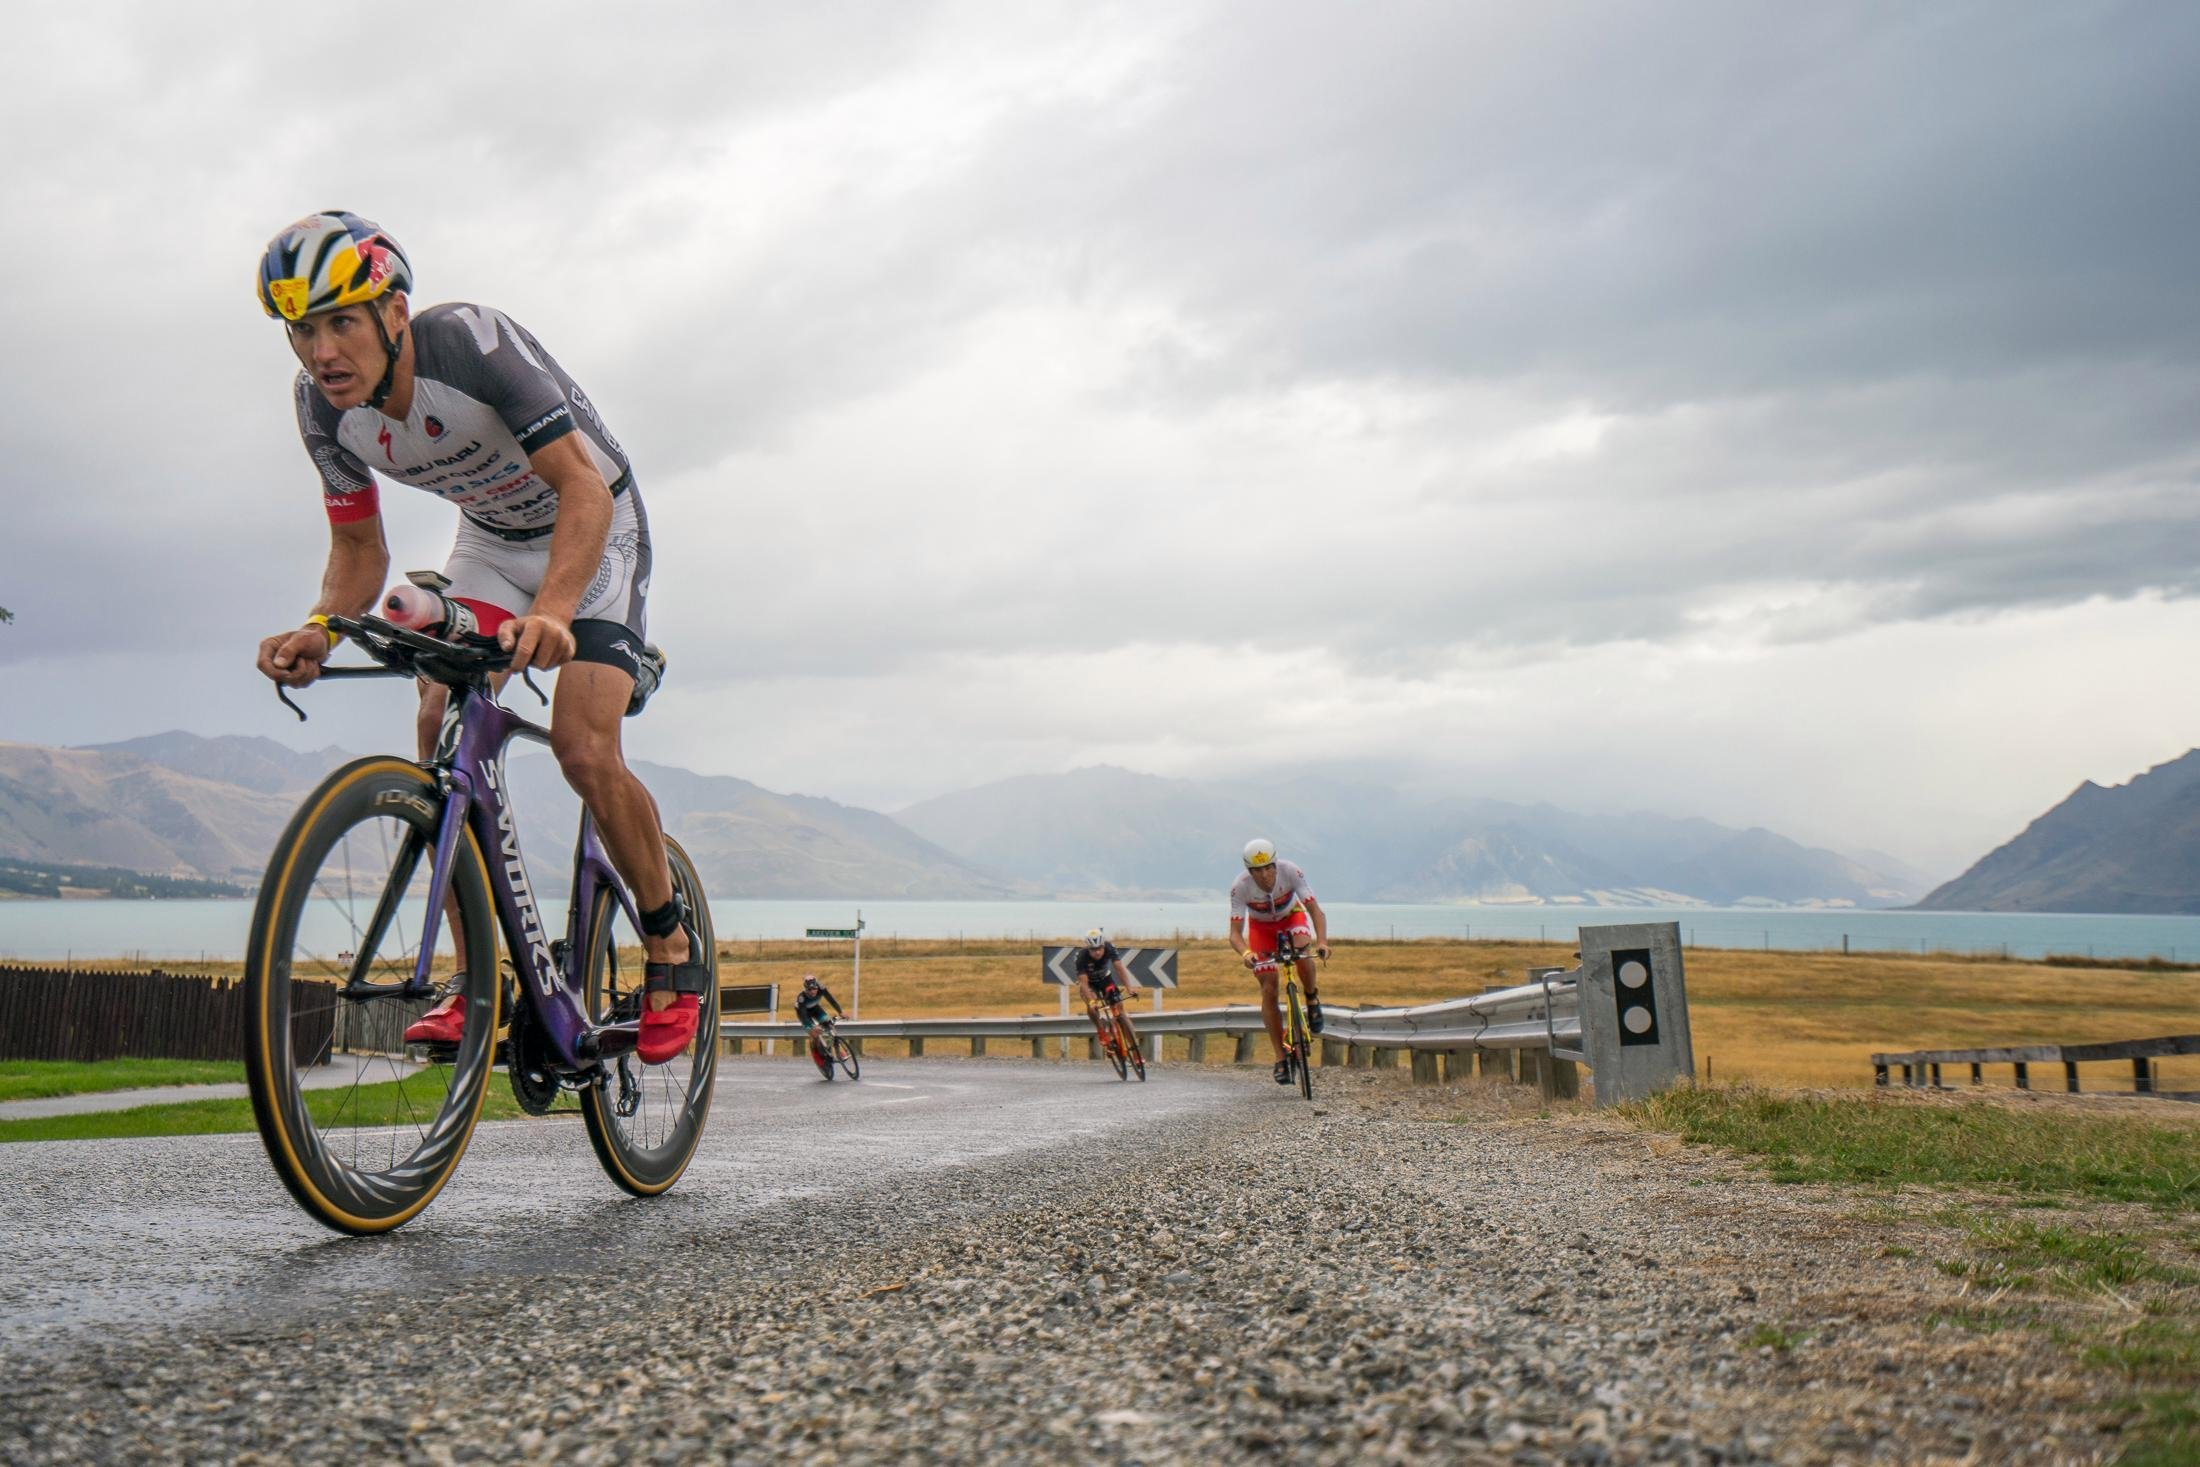 Braden Currie leading the pack at Challenge Wanaka 2018